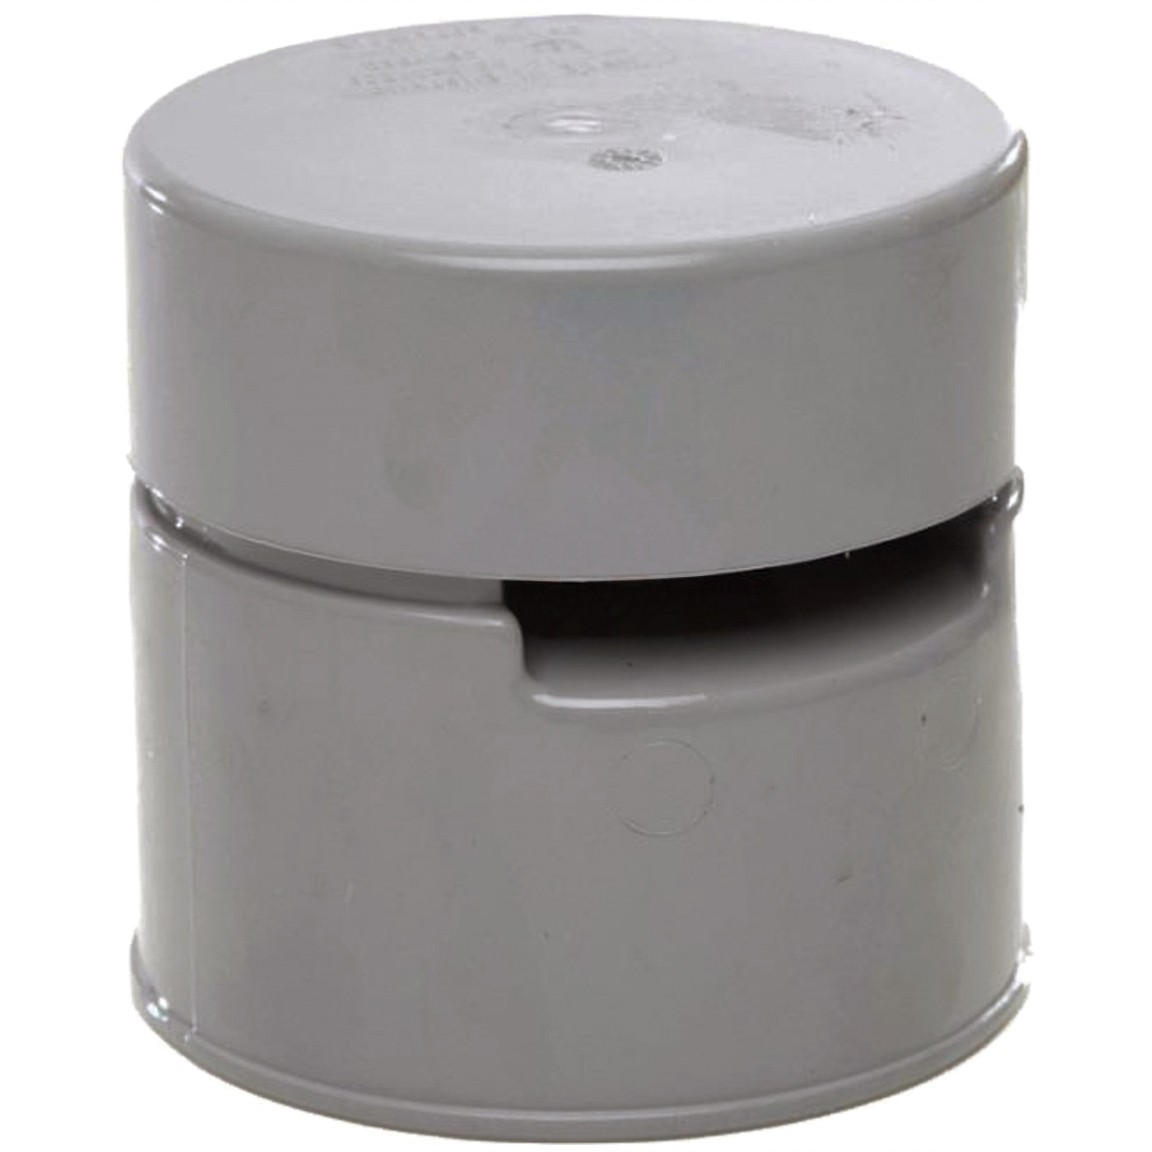 Polypipe 110mm Soil Solvent Air Admittance Valve - Grey